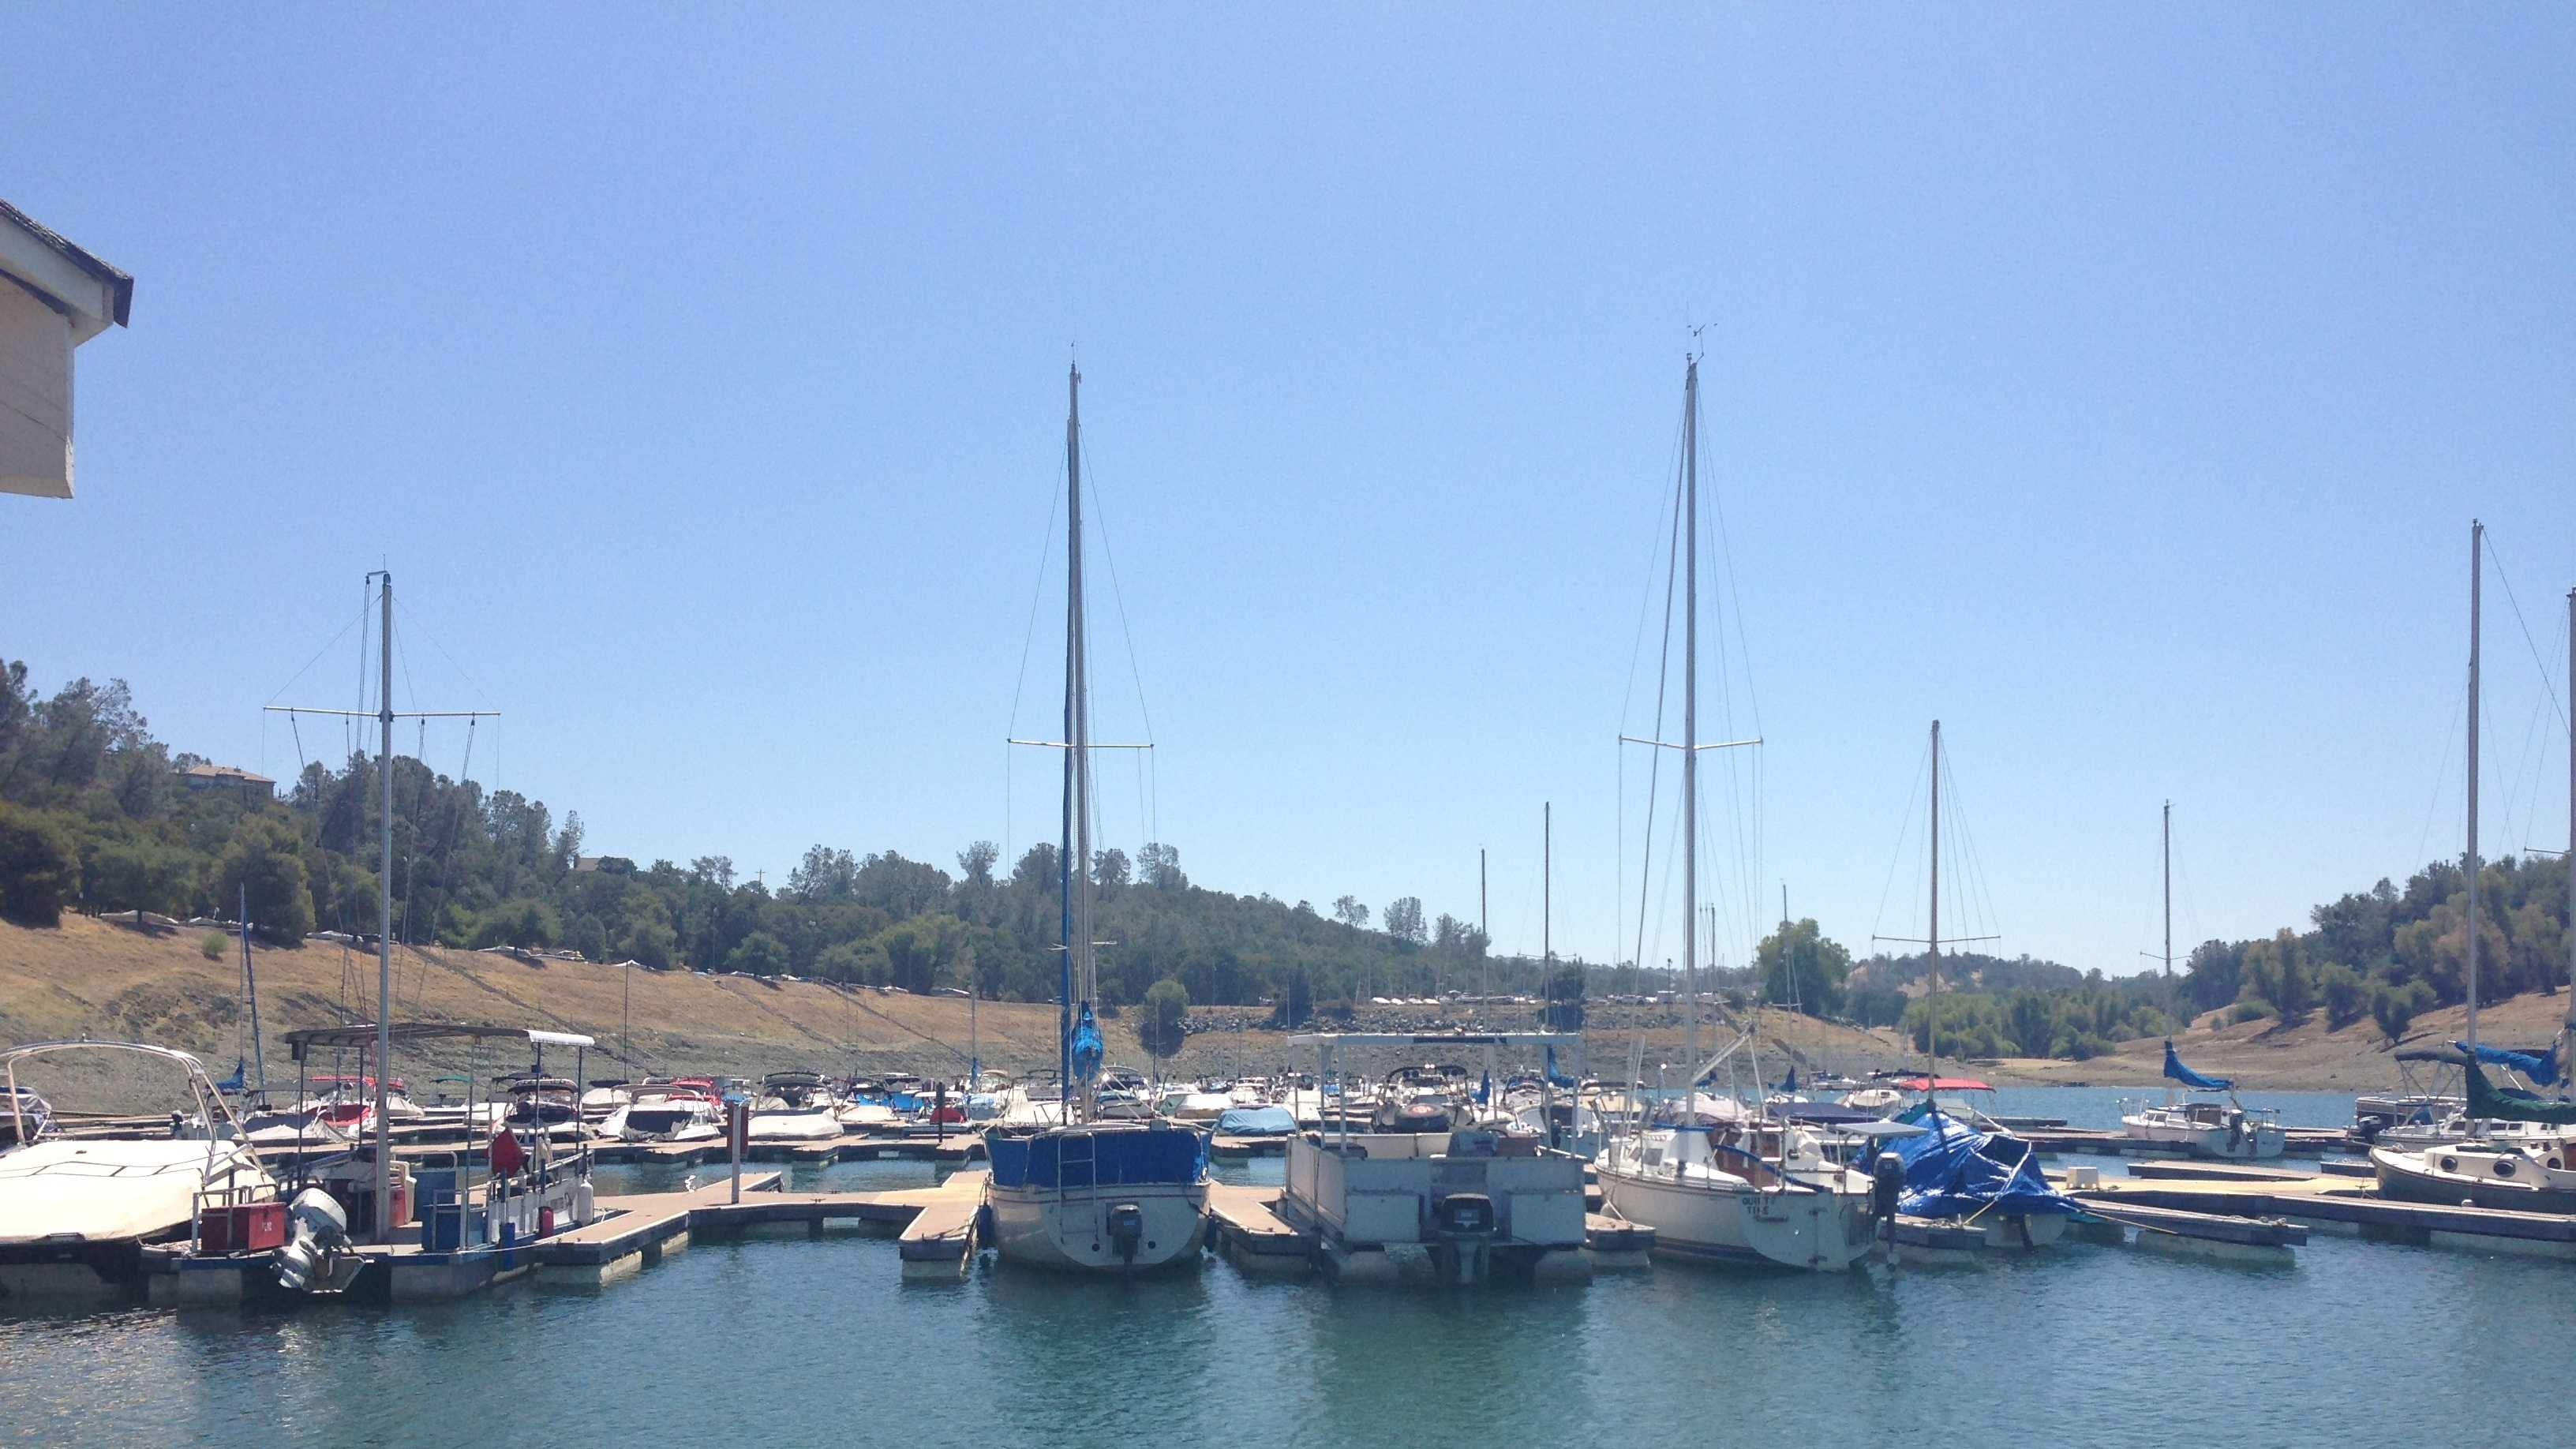 Folsom Lake boats 080513.JPG